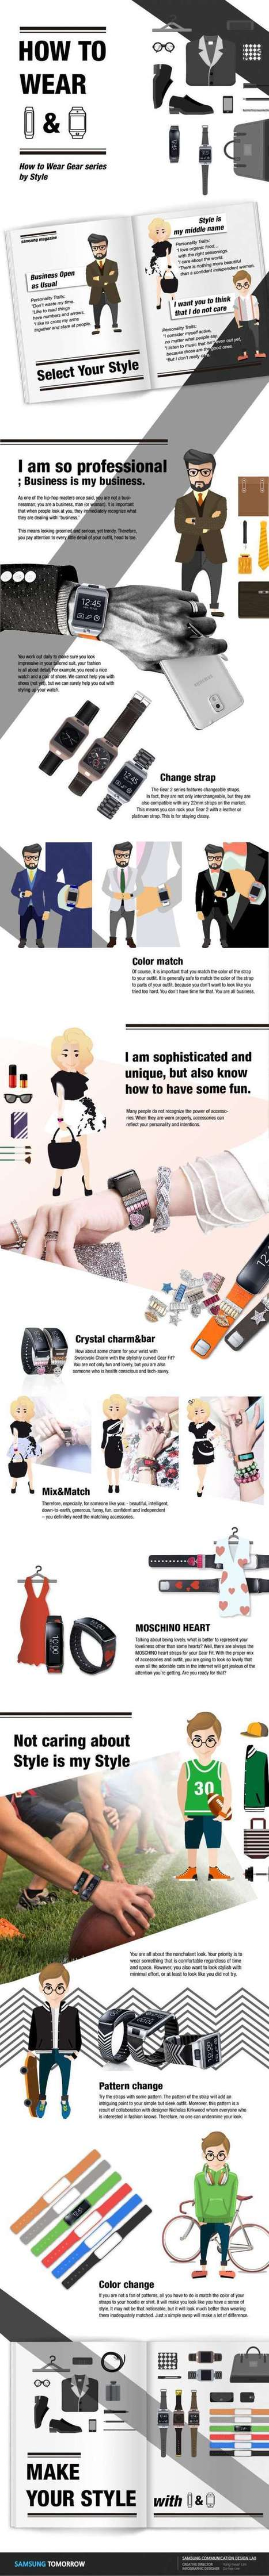 Dress Smart: How to Wear Wearable Tech in Style [INFOGRAPHIC] | The Latest in Social Media | Scoop.it